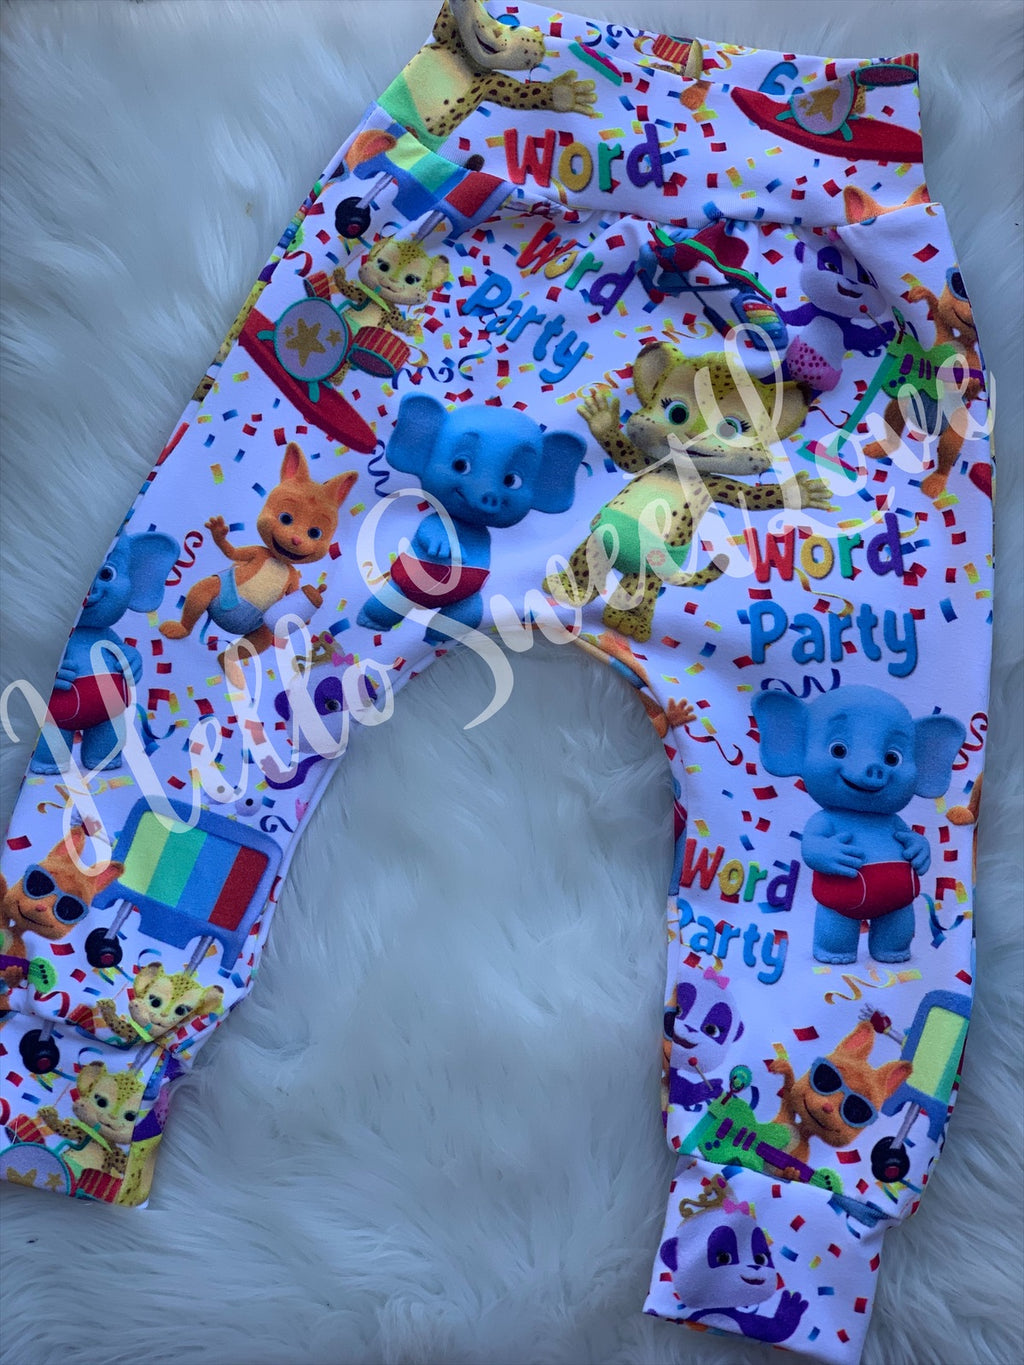 WORD PARTY PANTS